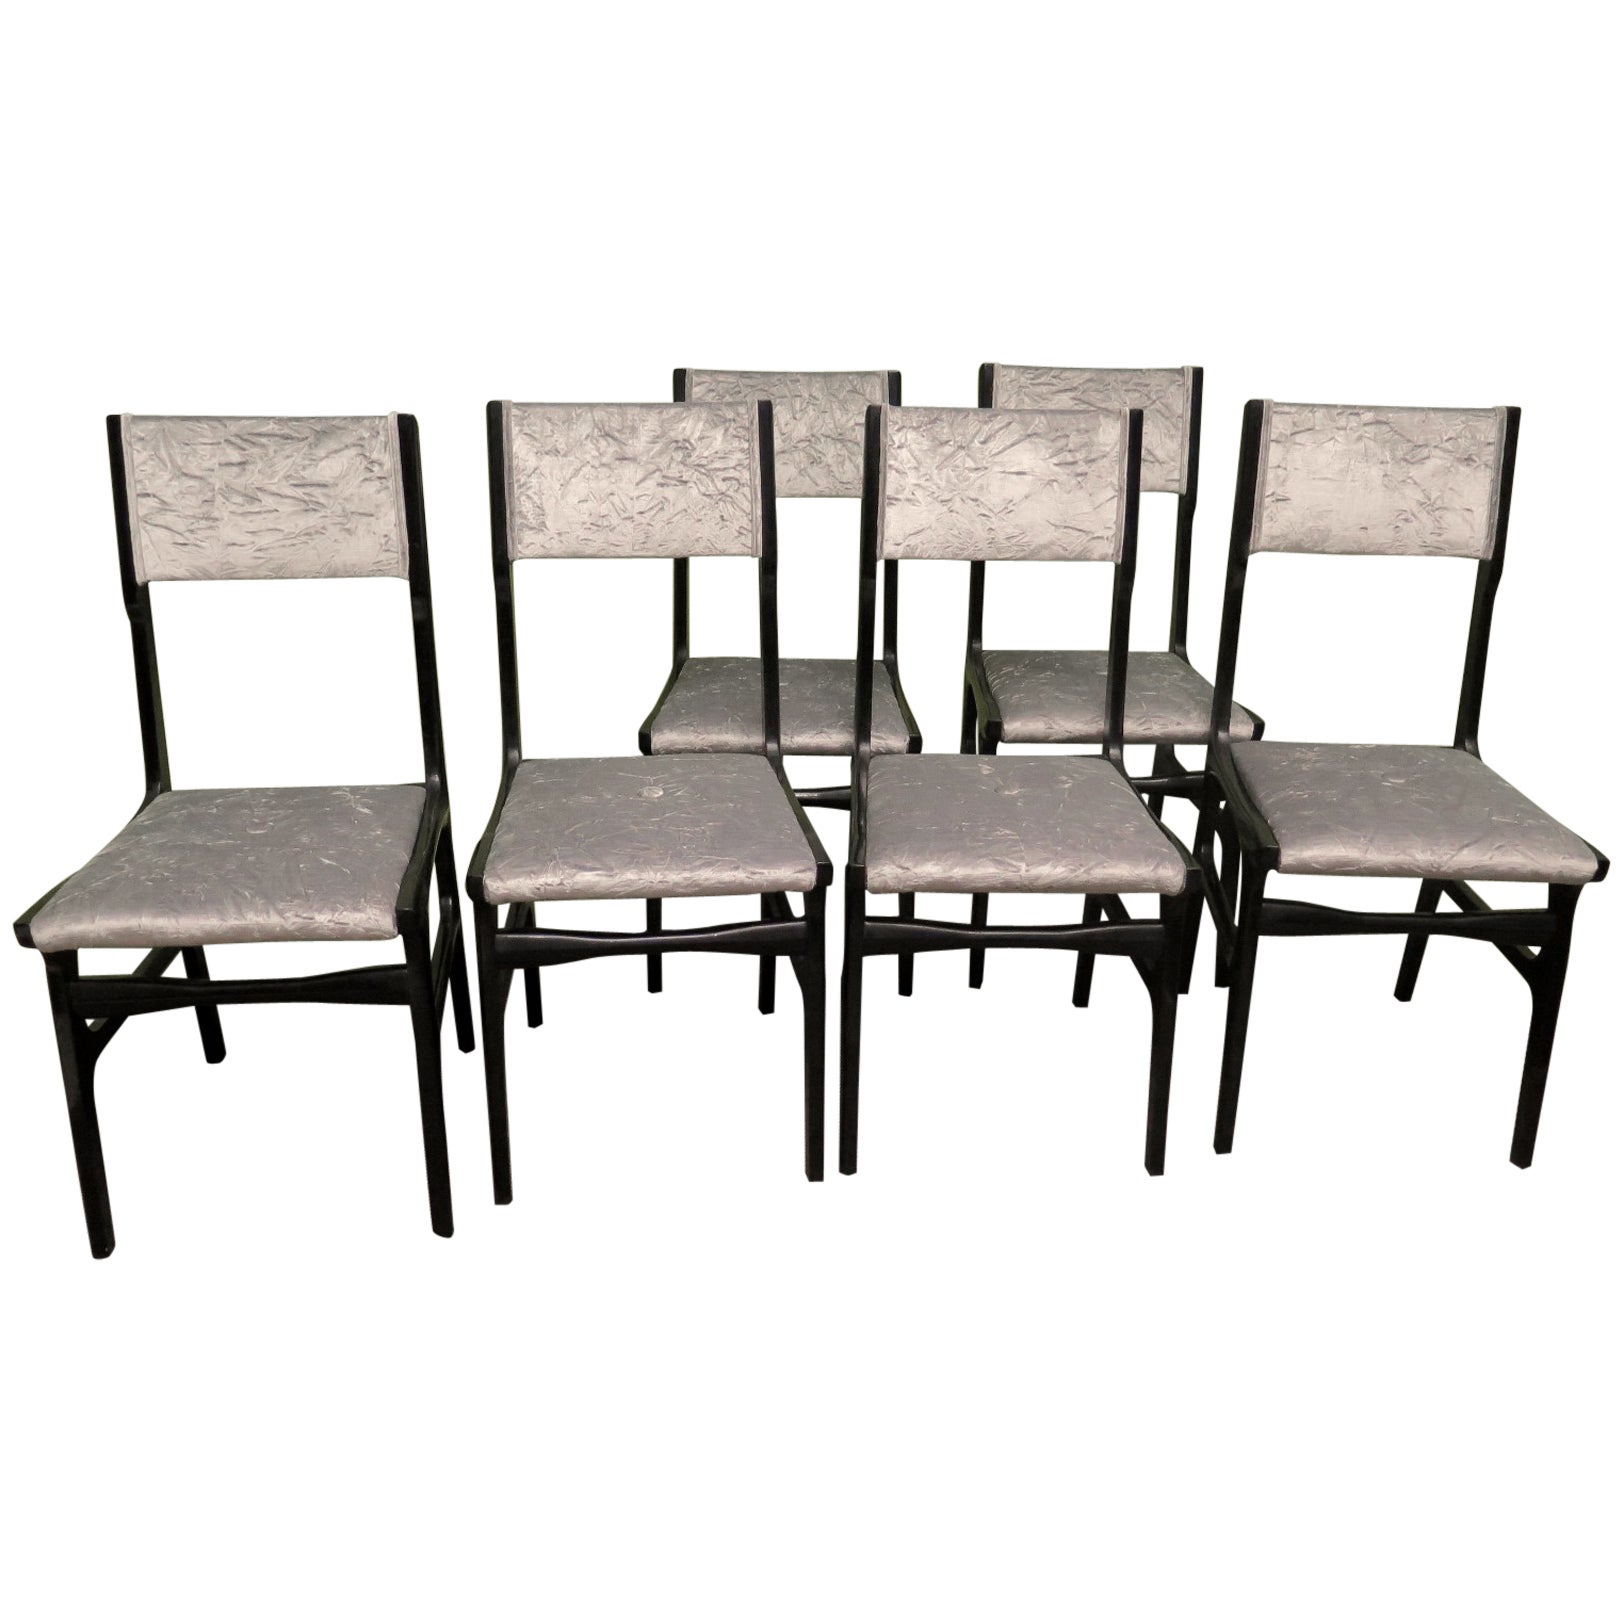 Set of Six Carlo de Carli Attributed Italian Midcentury Chairs, 1955